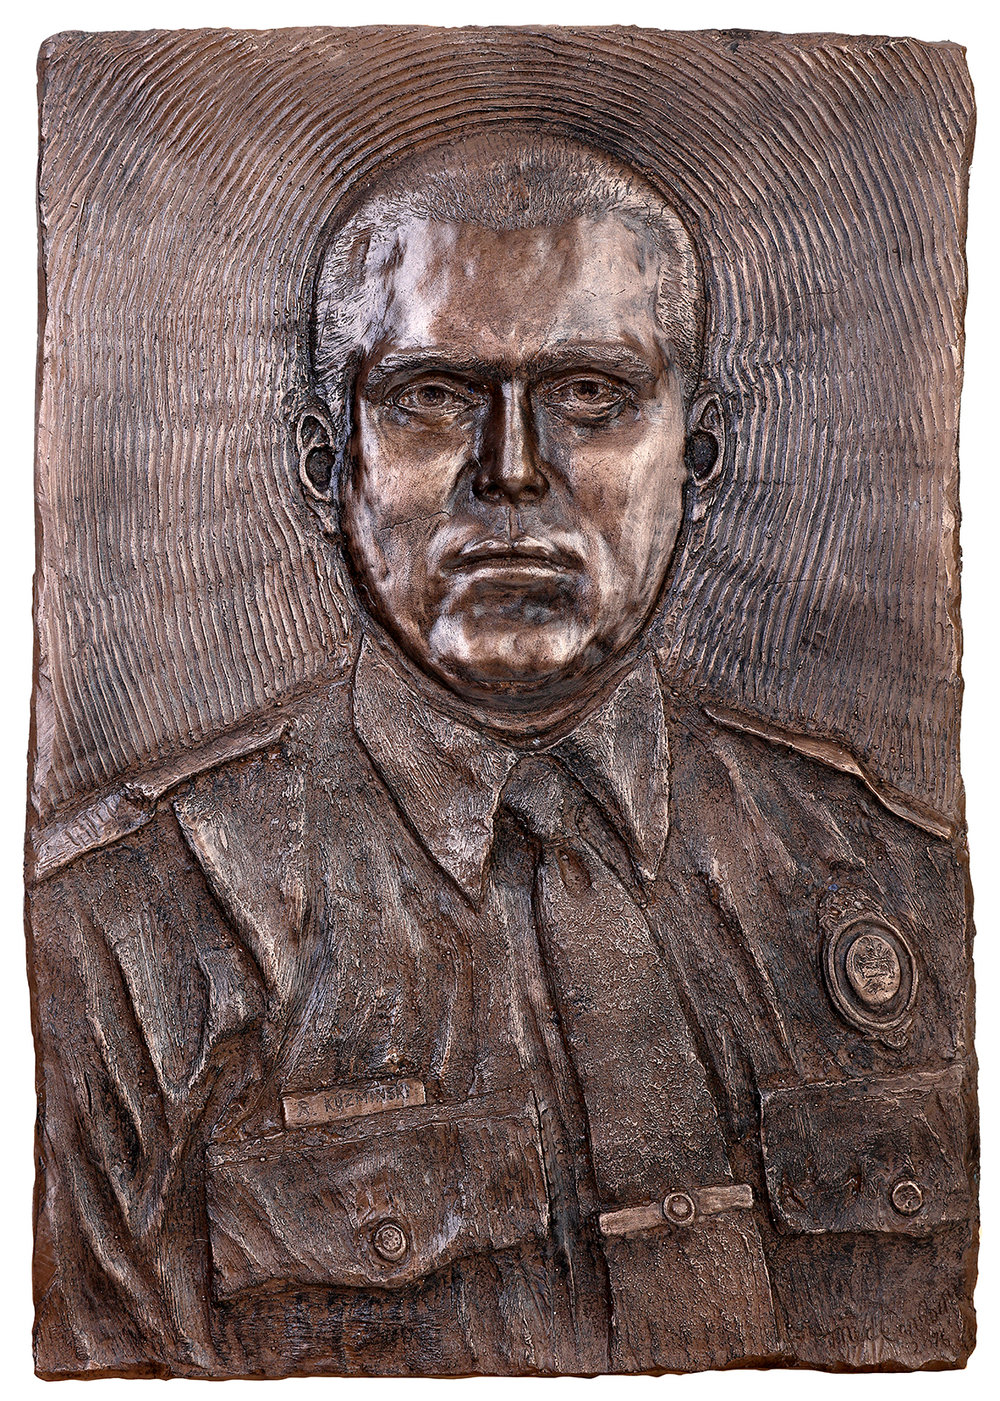 """Robert Kozminski - 24"""" x """"30 Cold Cast bronze $1,200.   Cold Cast Bronze stone $800""""9 x 12' Cold Cast bronze $500.   Cold Cast Bronze stone $200Replicas hand made by Mic. To purchase please Call or email Mic"""